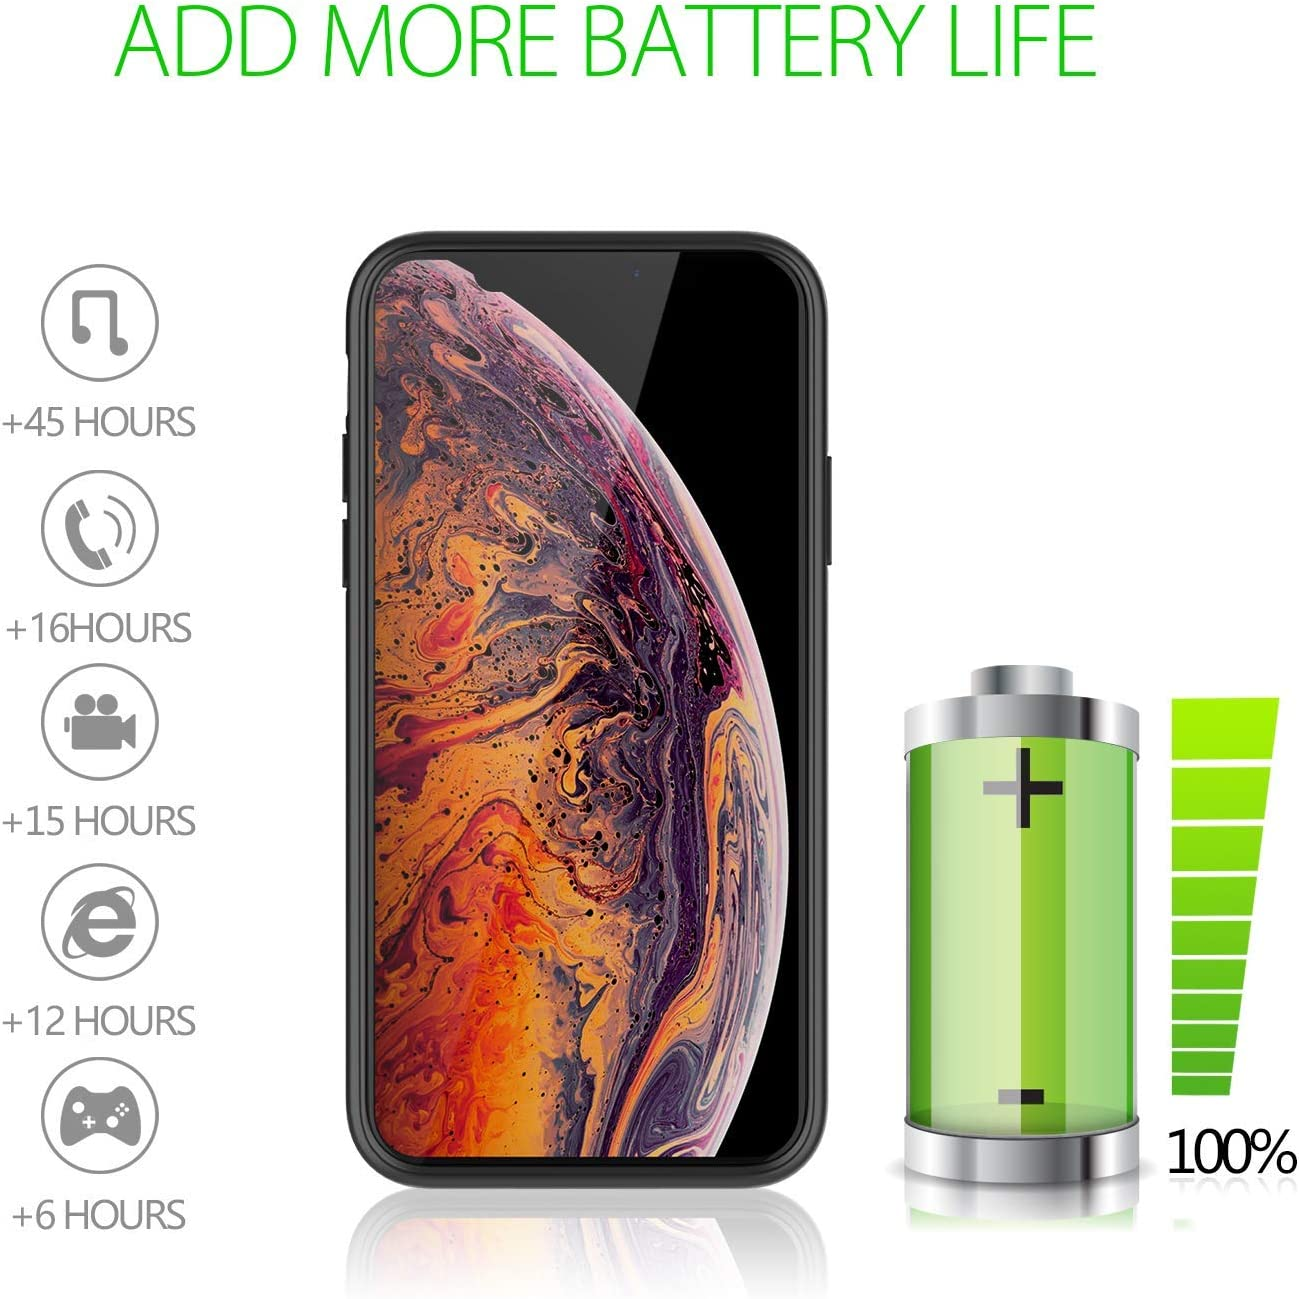 Black BioRing Premium Full Protection Ultra Thin Battery Charger Case Compatible with iPhone Xs Max 4000 mAh 150/% Extra Battery Power Light-Weight Slim Anti Slippy Charger Case